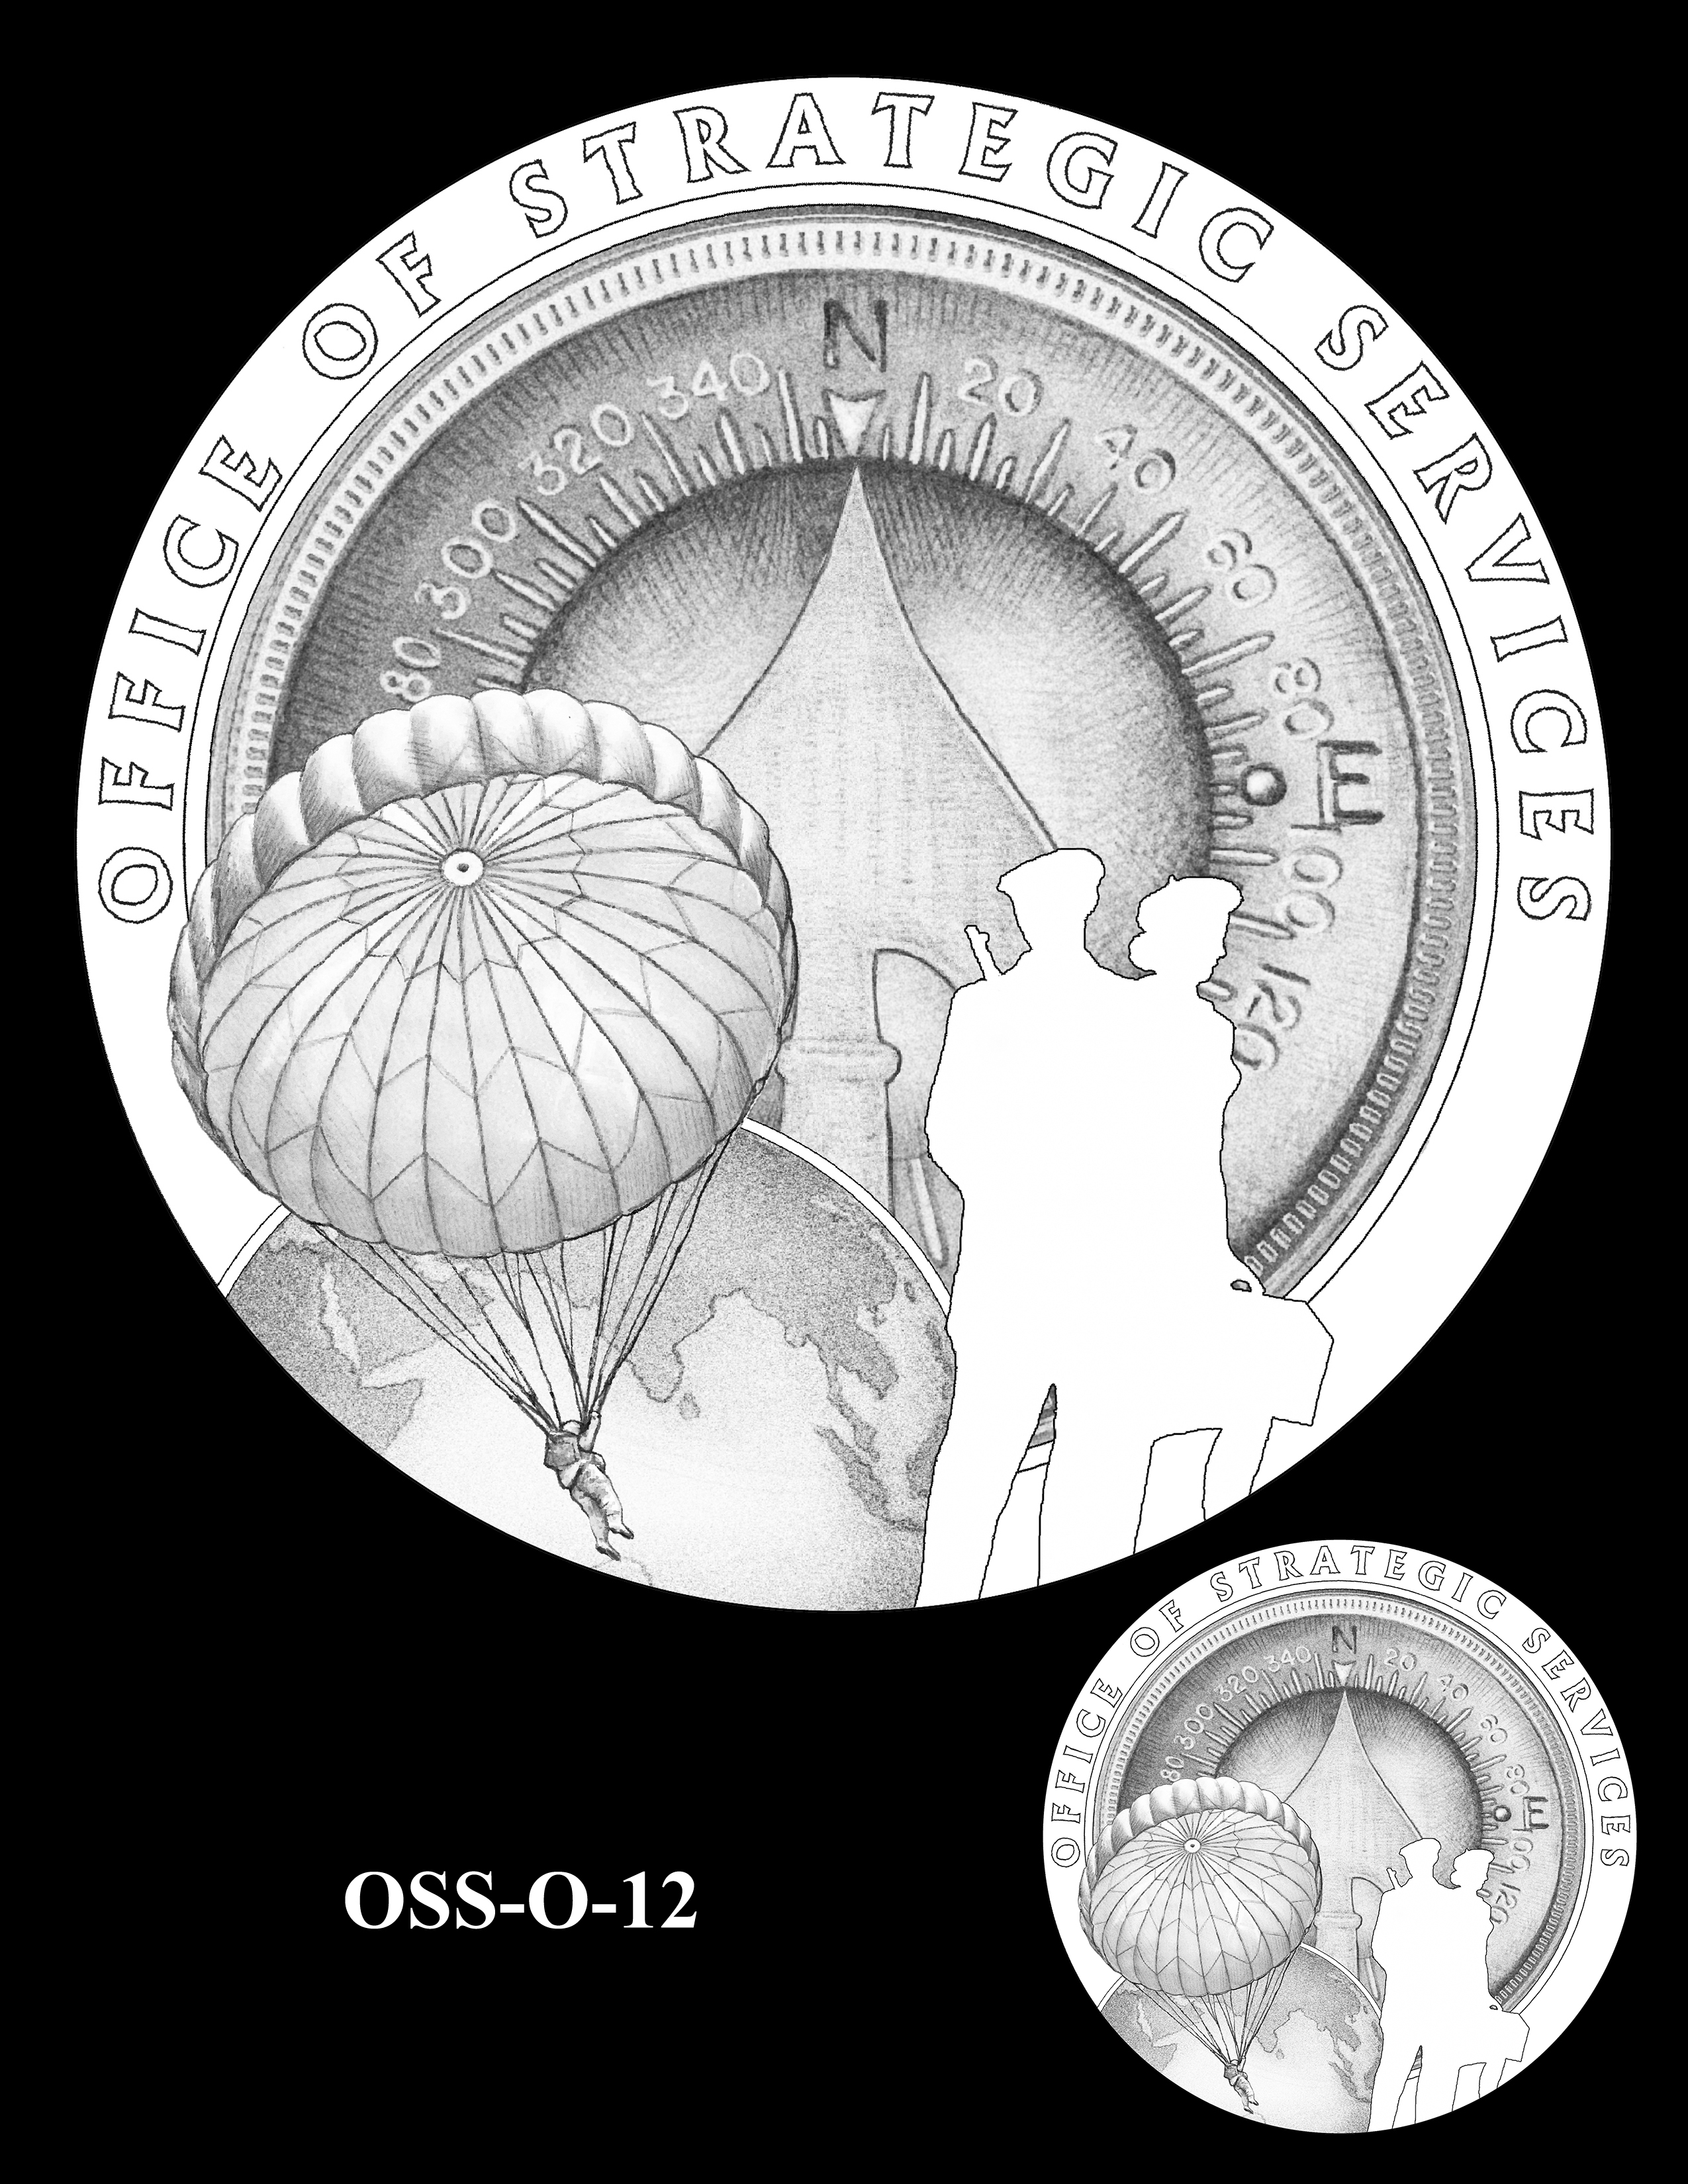 OSS-O-12 -- Office of Strategic Services Congressional Gold Medal